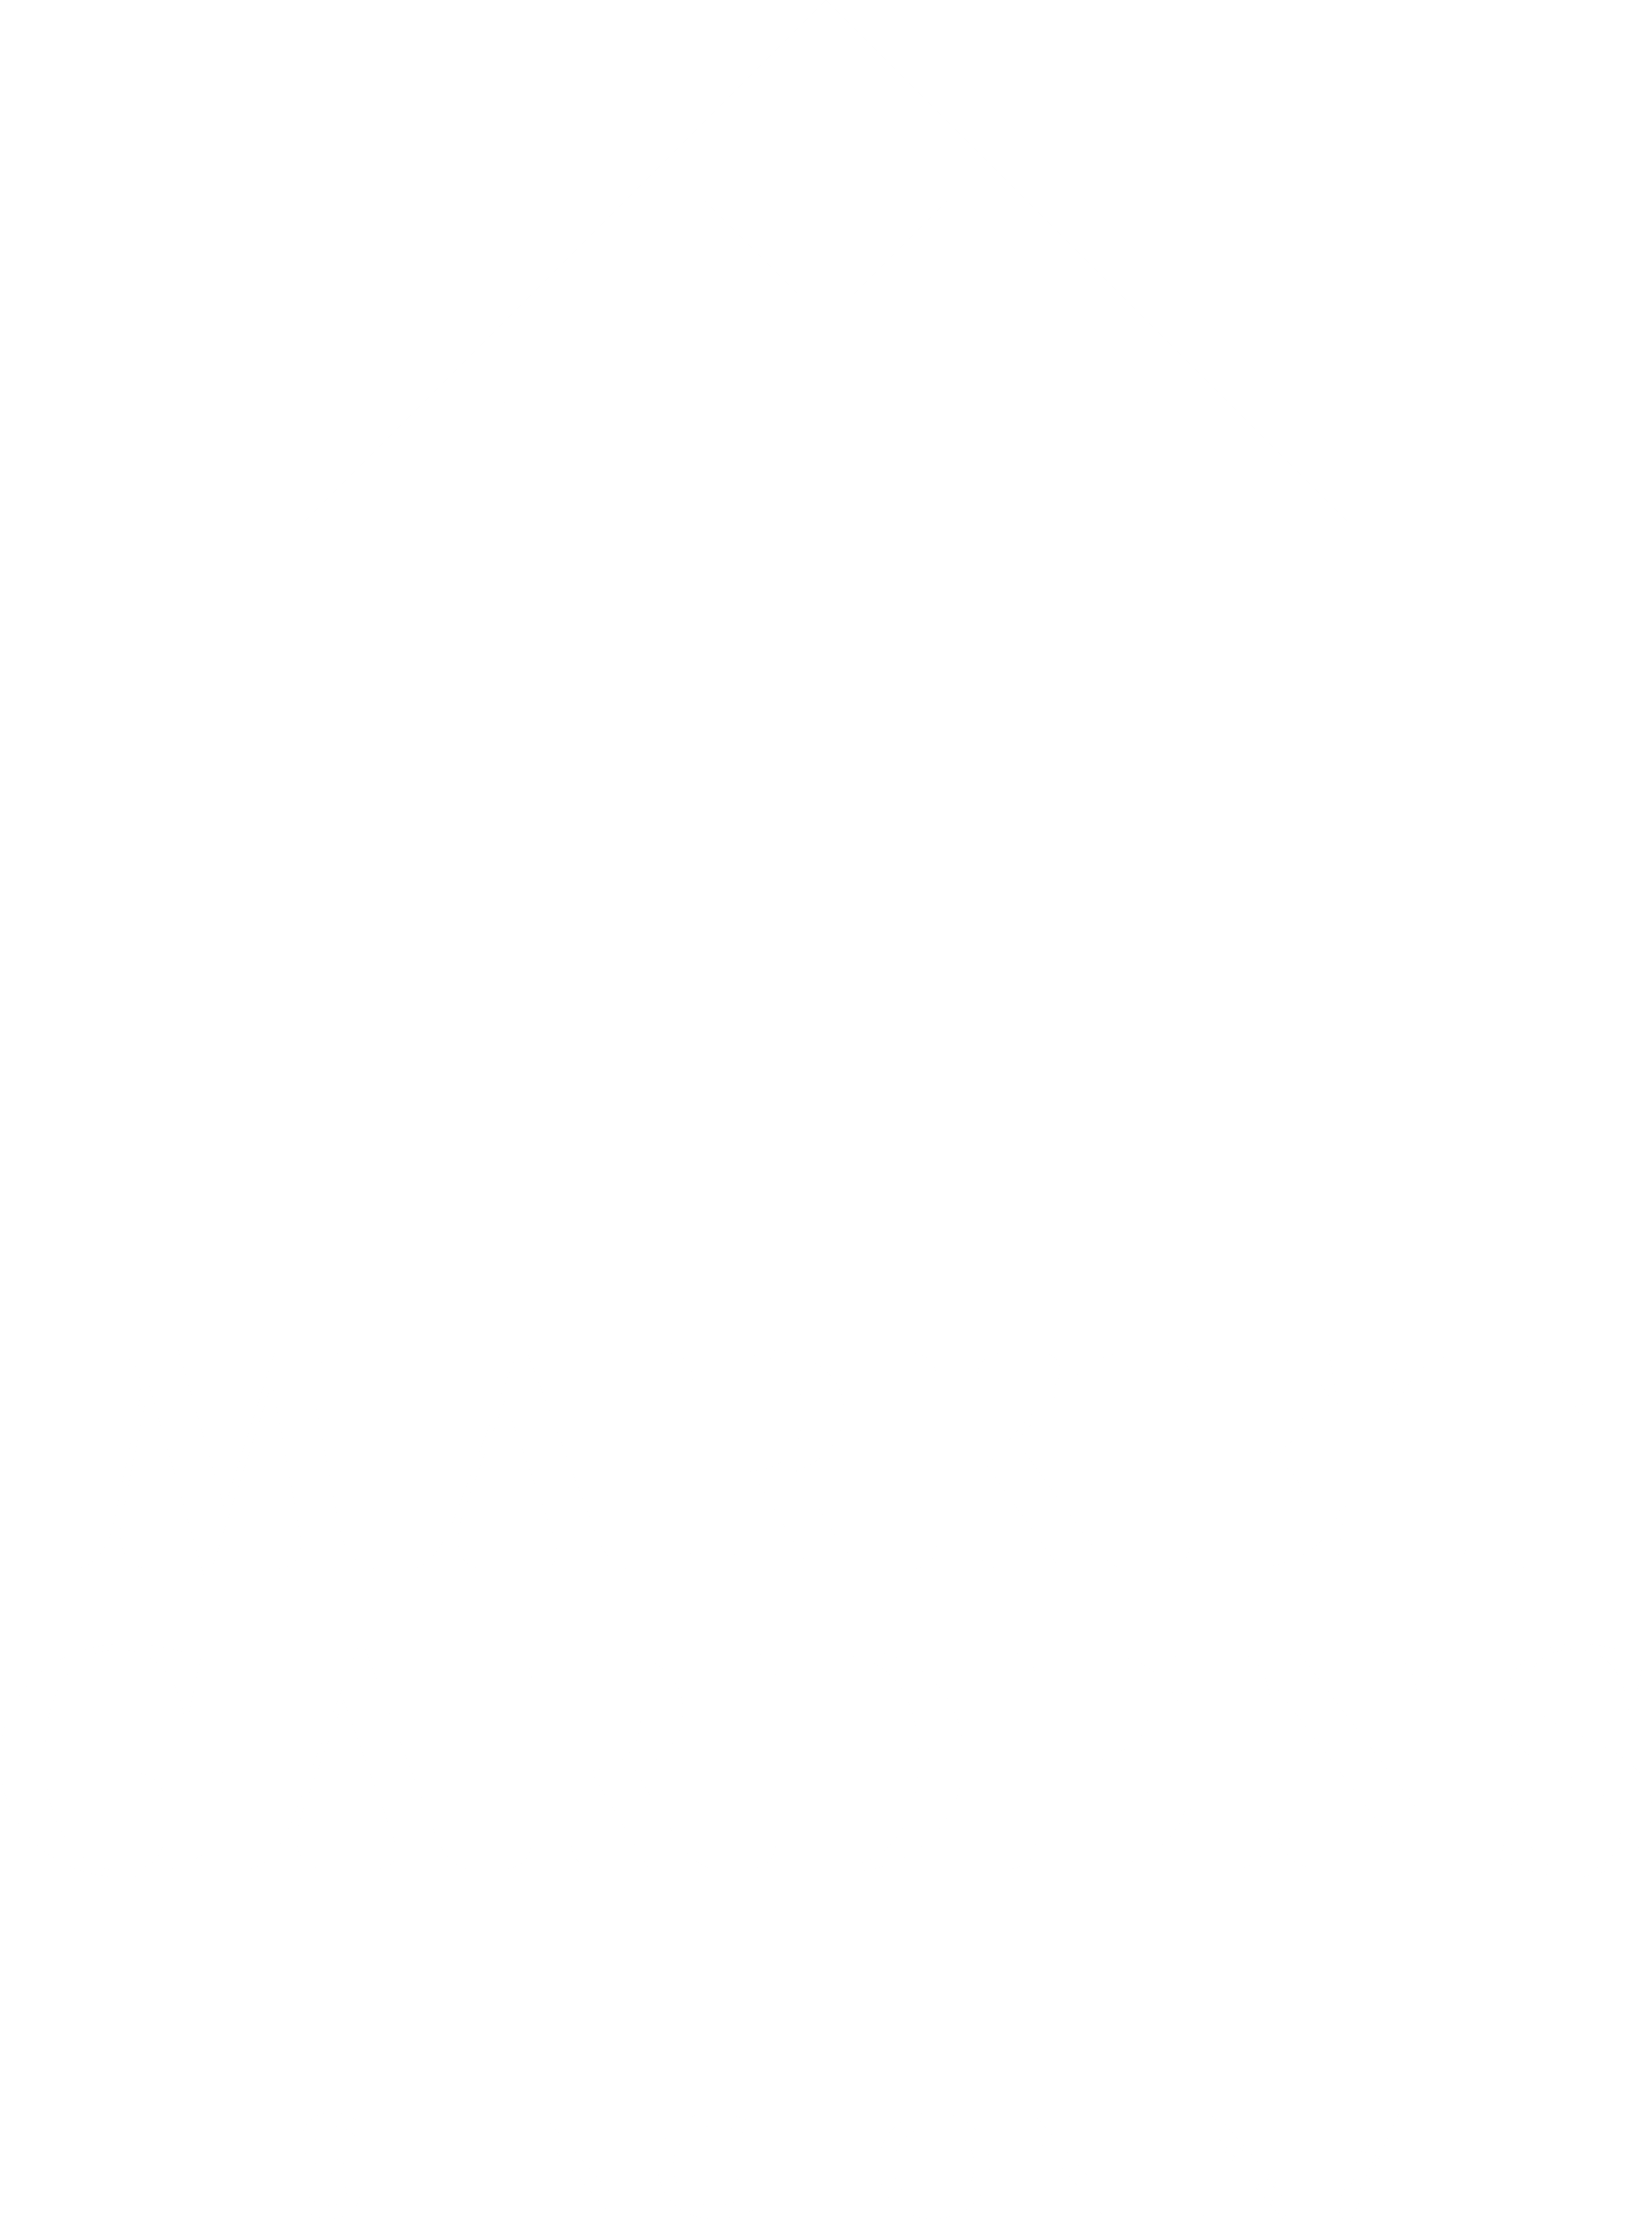 Market Gardens - Shared Ownership